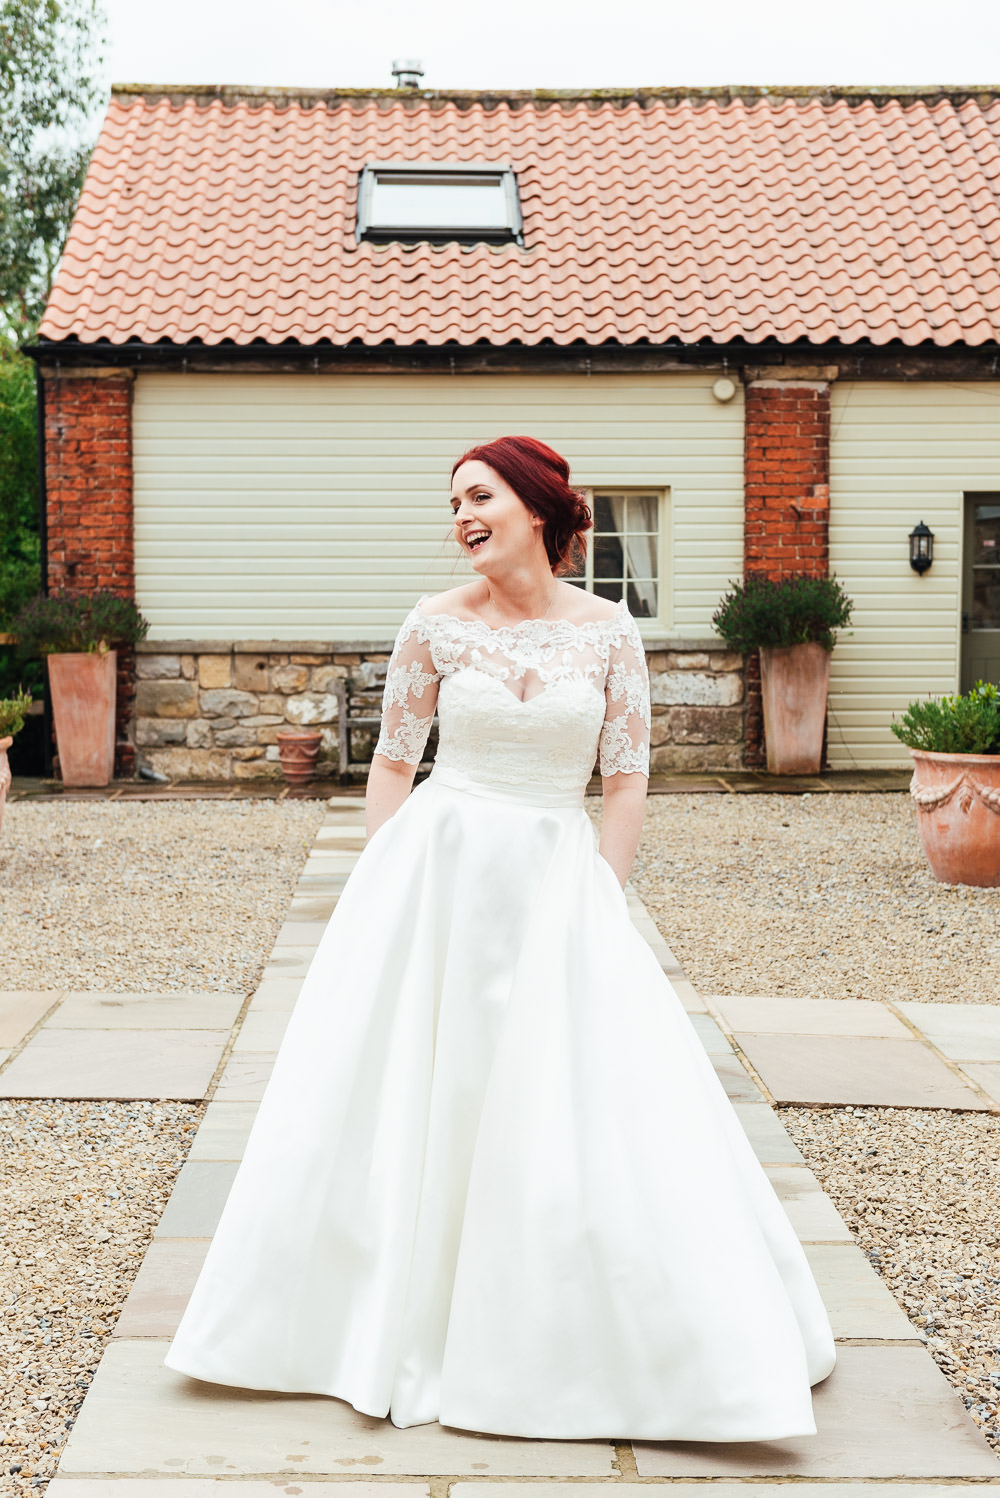 Dress Gown Bride Bridal Pockets Lace Sleeves Bow Back Bardot DIY Barn Wedding Jessica Grace Photography